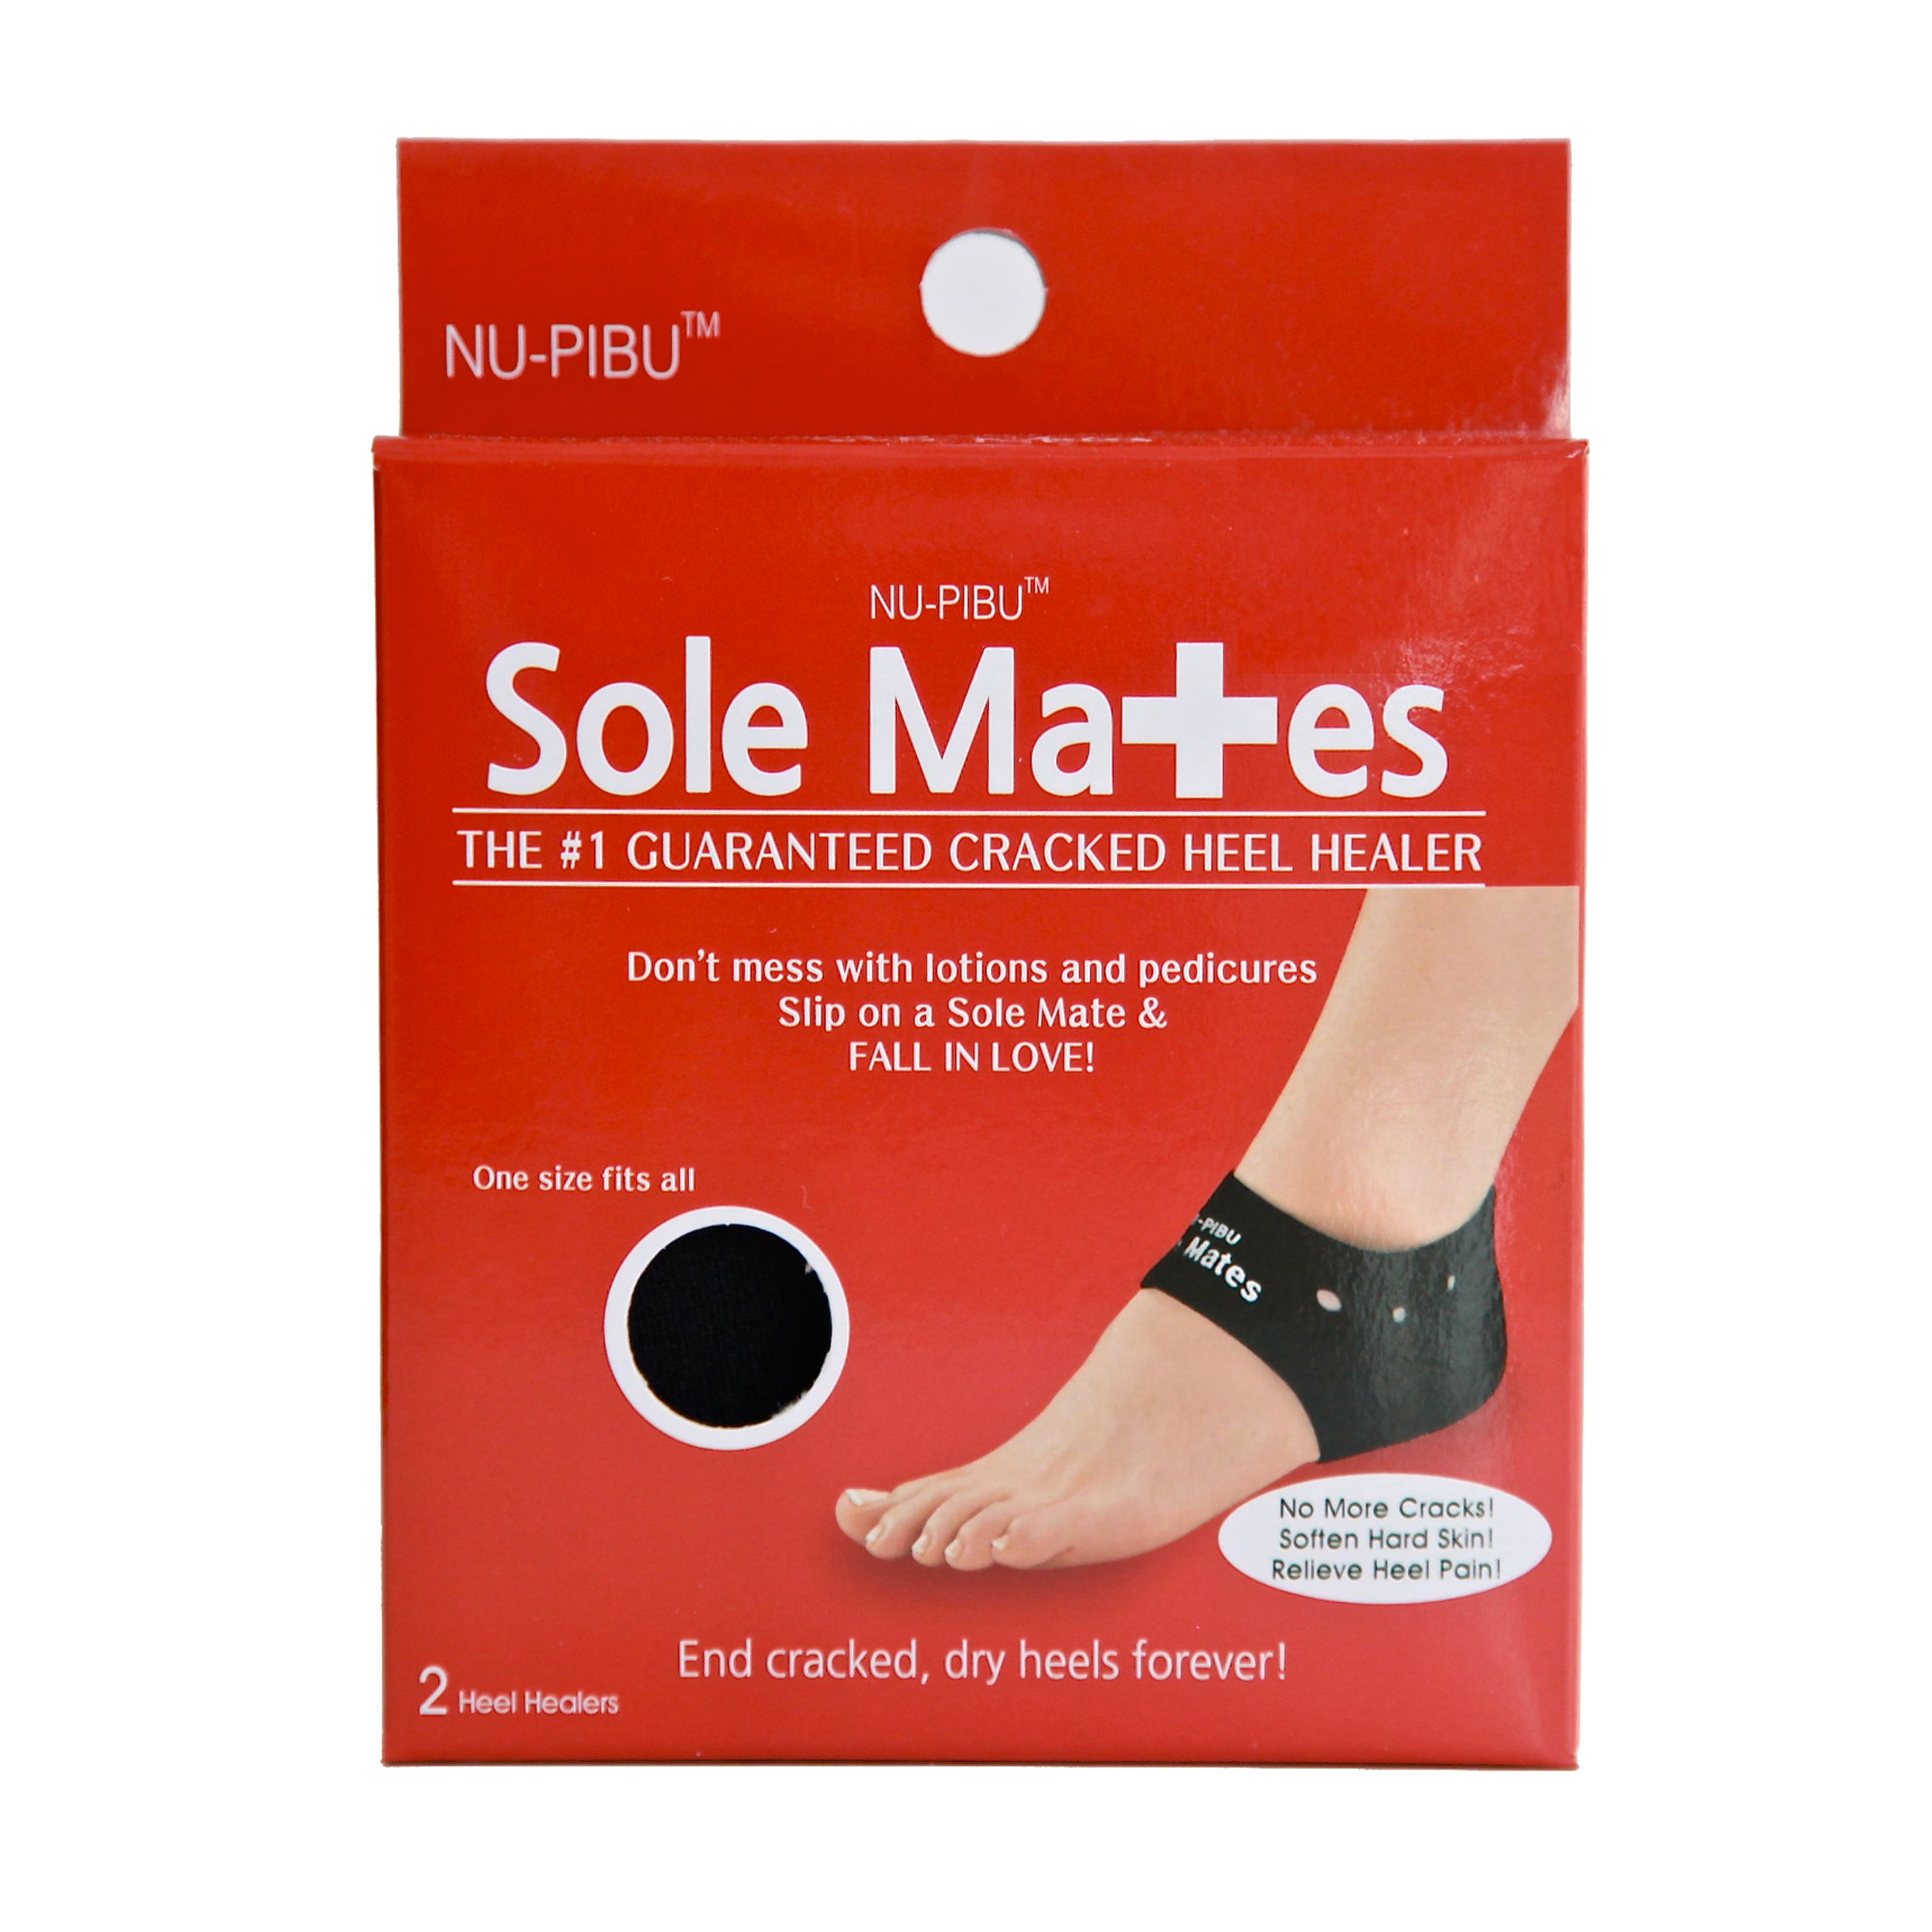 Sole Mates - Cracked Heel Healers!! You can begin healing painful cracks and rough, dry heels instantly! Don't mess with lotions and pedicures-- heal your cracked skin naturally from the inside out!